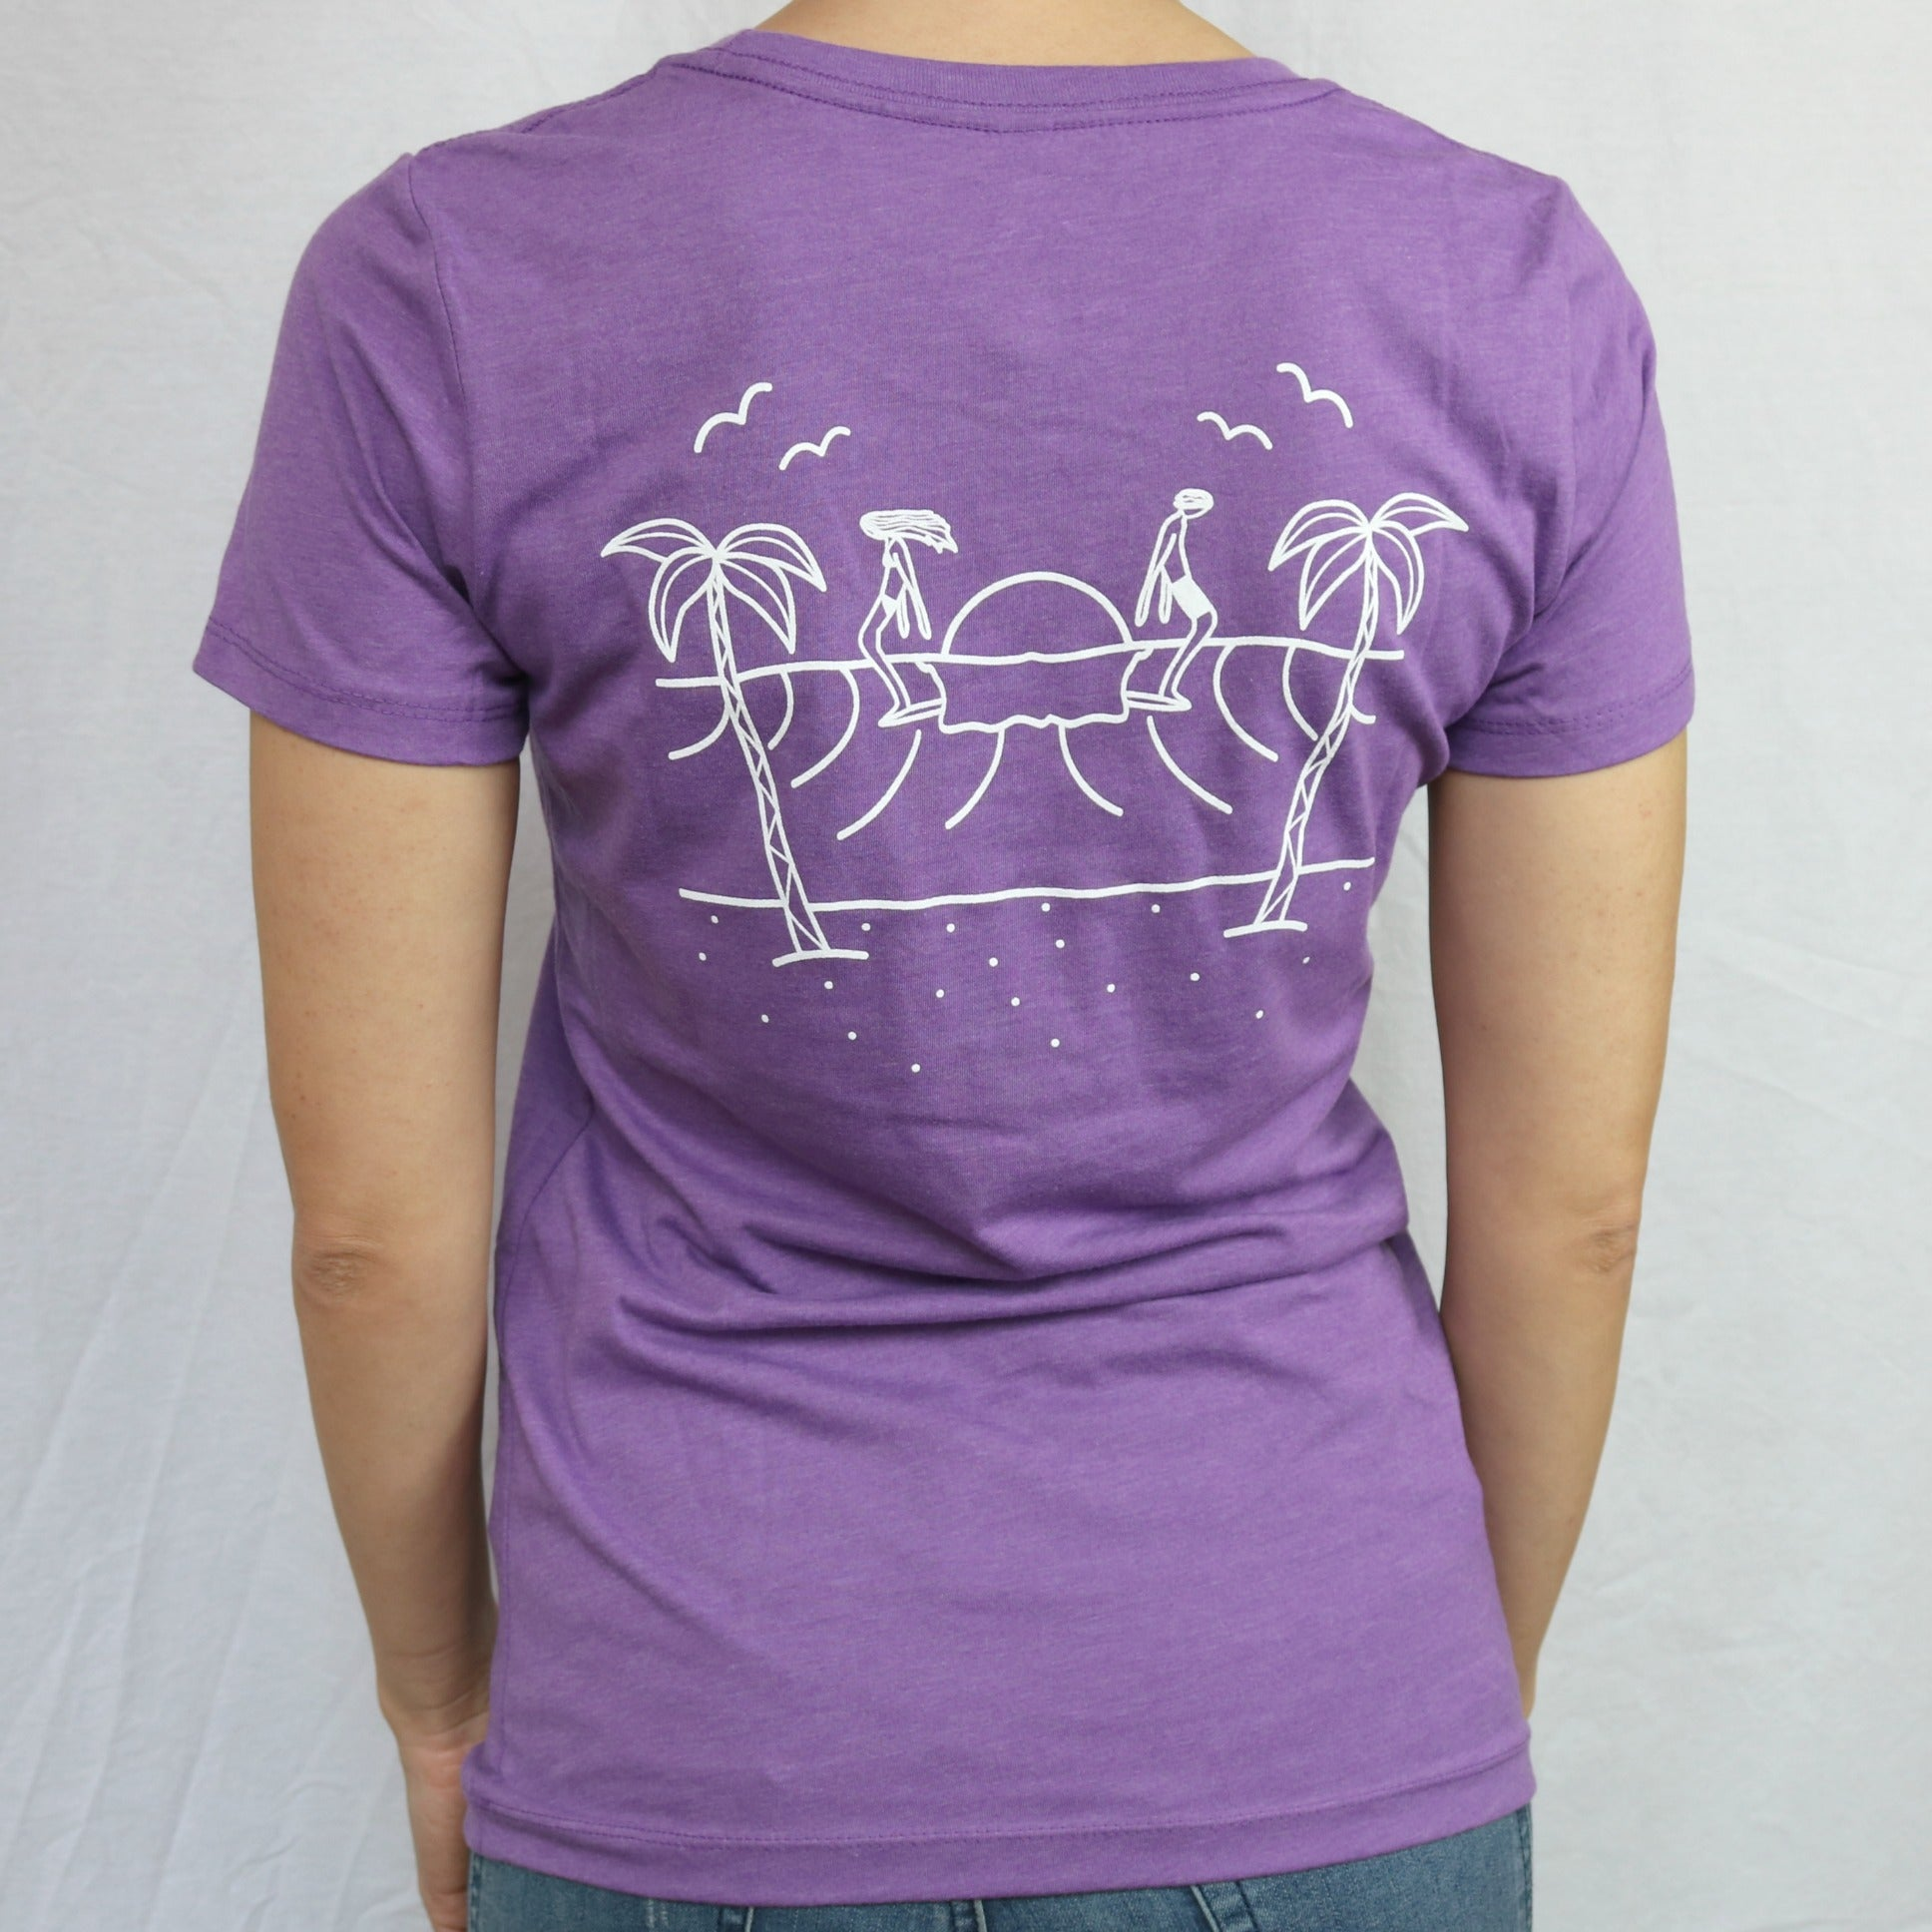 Longboardarian Girls Tee Cali Logging  - Purple Berry